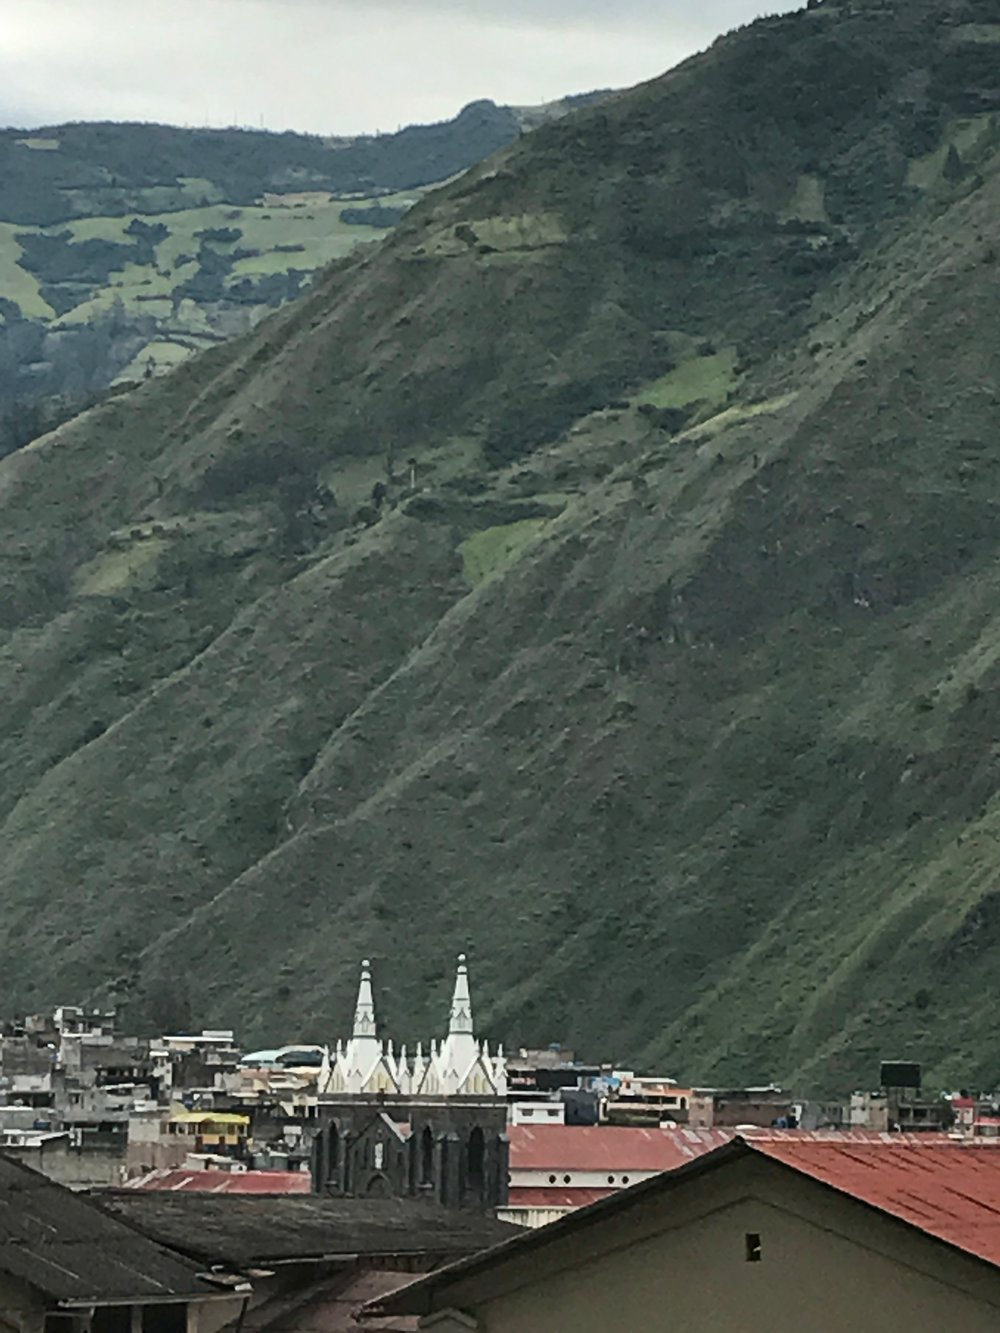 View of Baños from the hillside